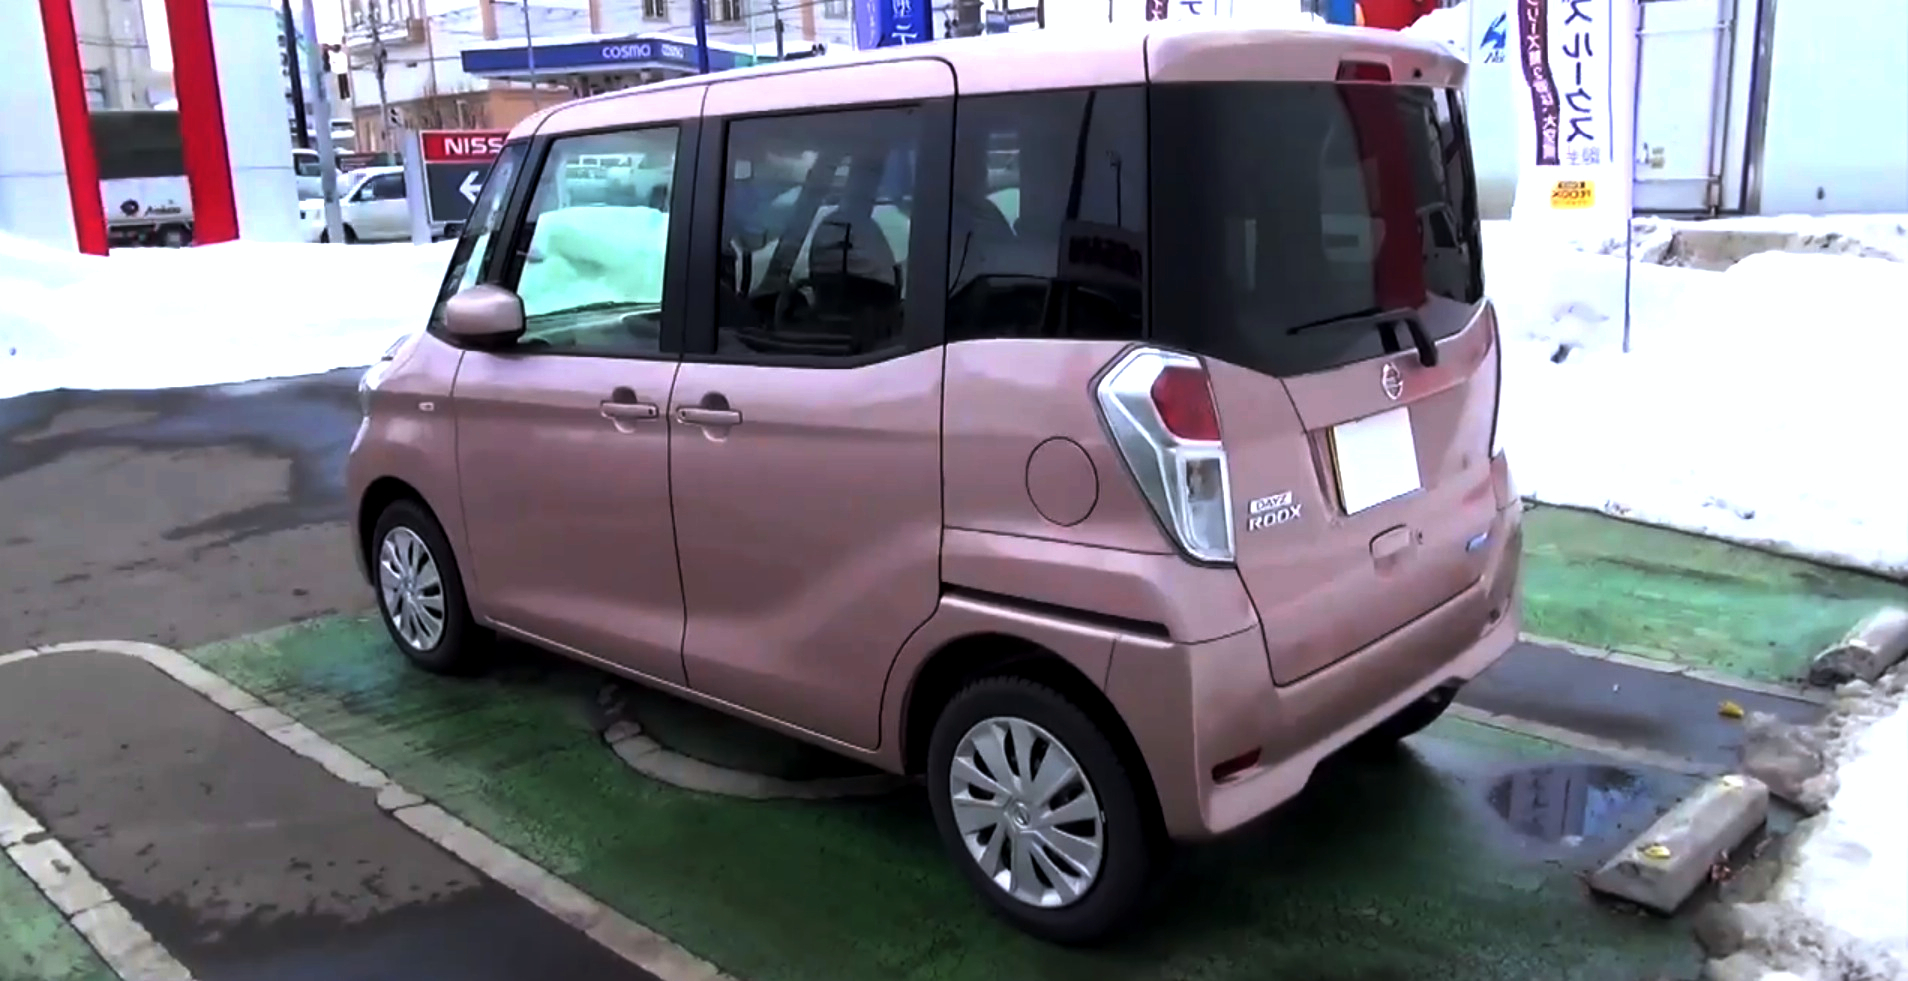 2014 Nissan Dayz Roox Is A Pink Shoe Box On Wheels